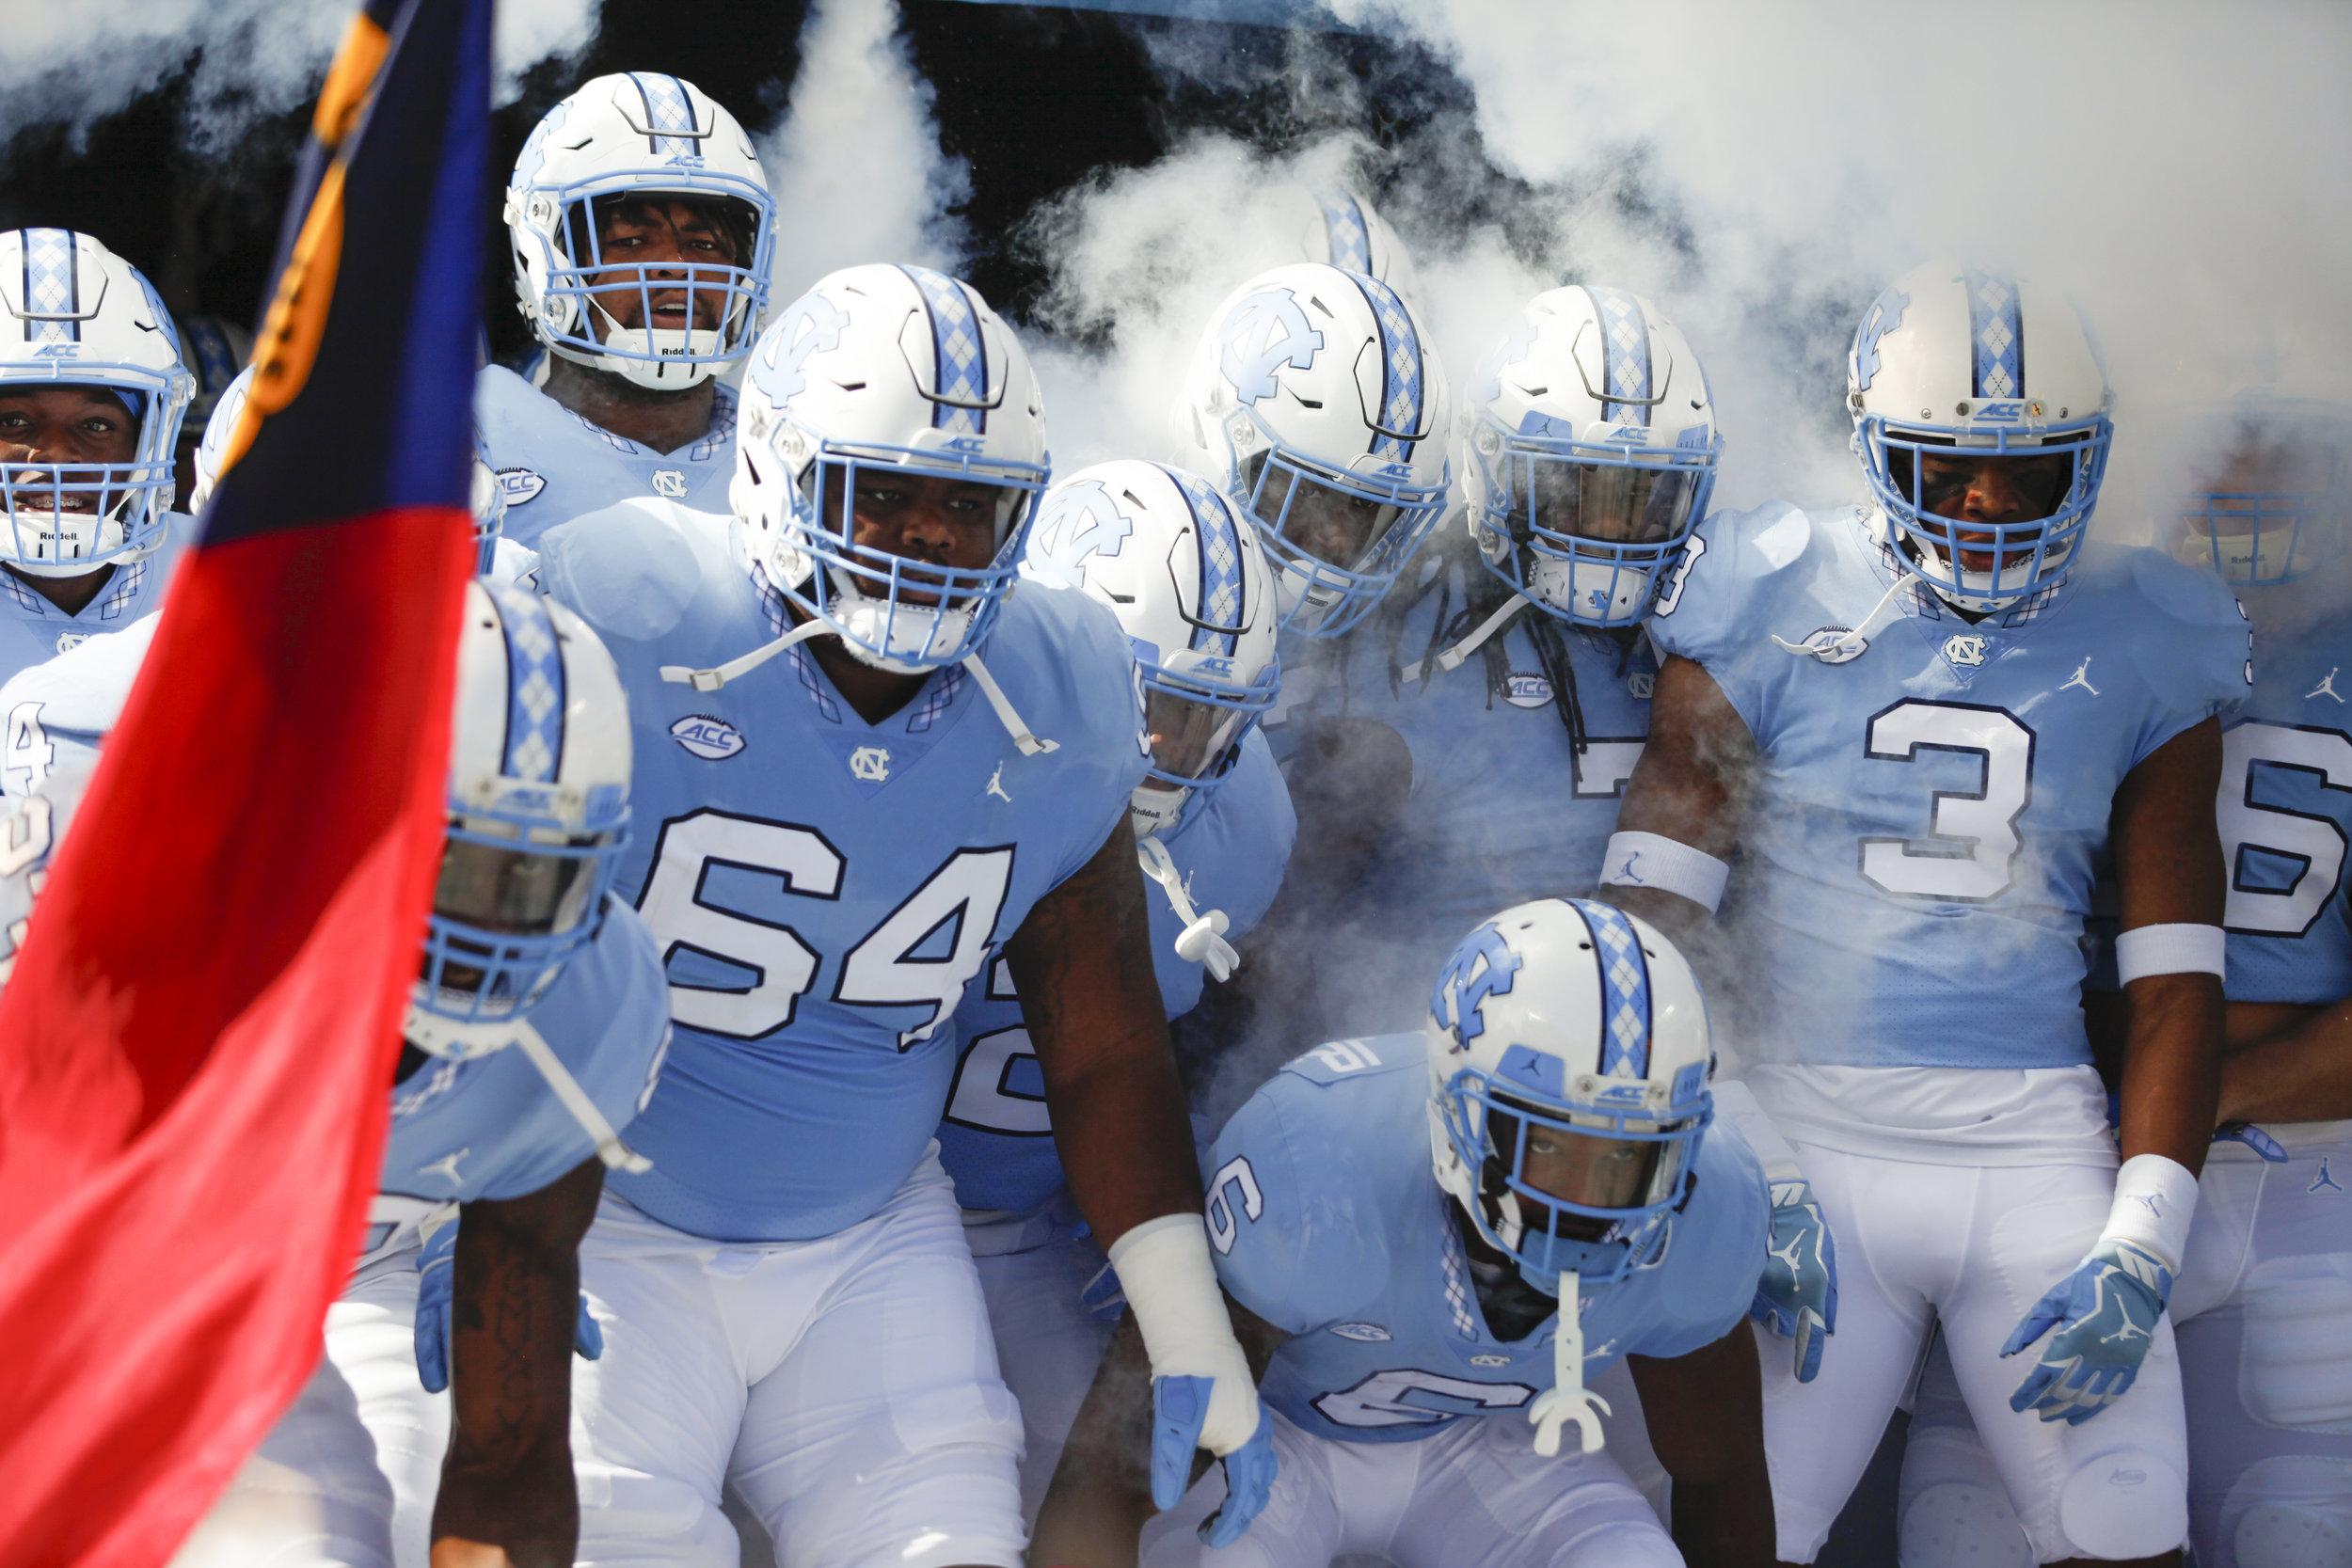 UNC football players prepare to storm the field at the beginning of the 2016 season.